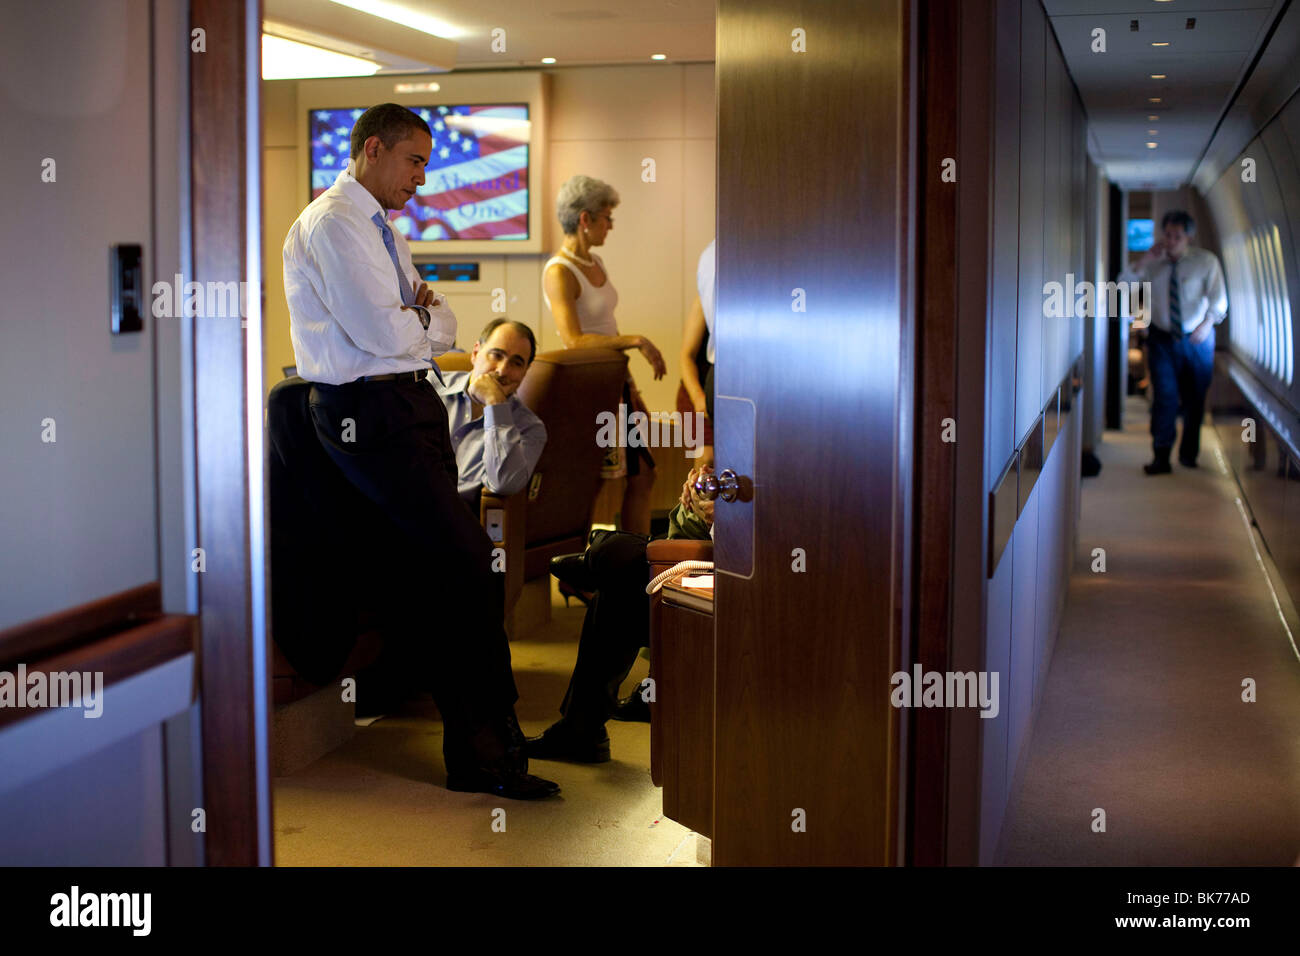 President Barack Obama confers with aides aboard Air Force One en route to Singapore, Nov. 14, 2009. - Stock Image